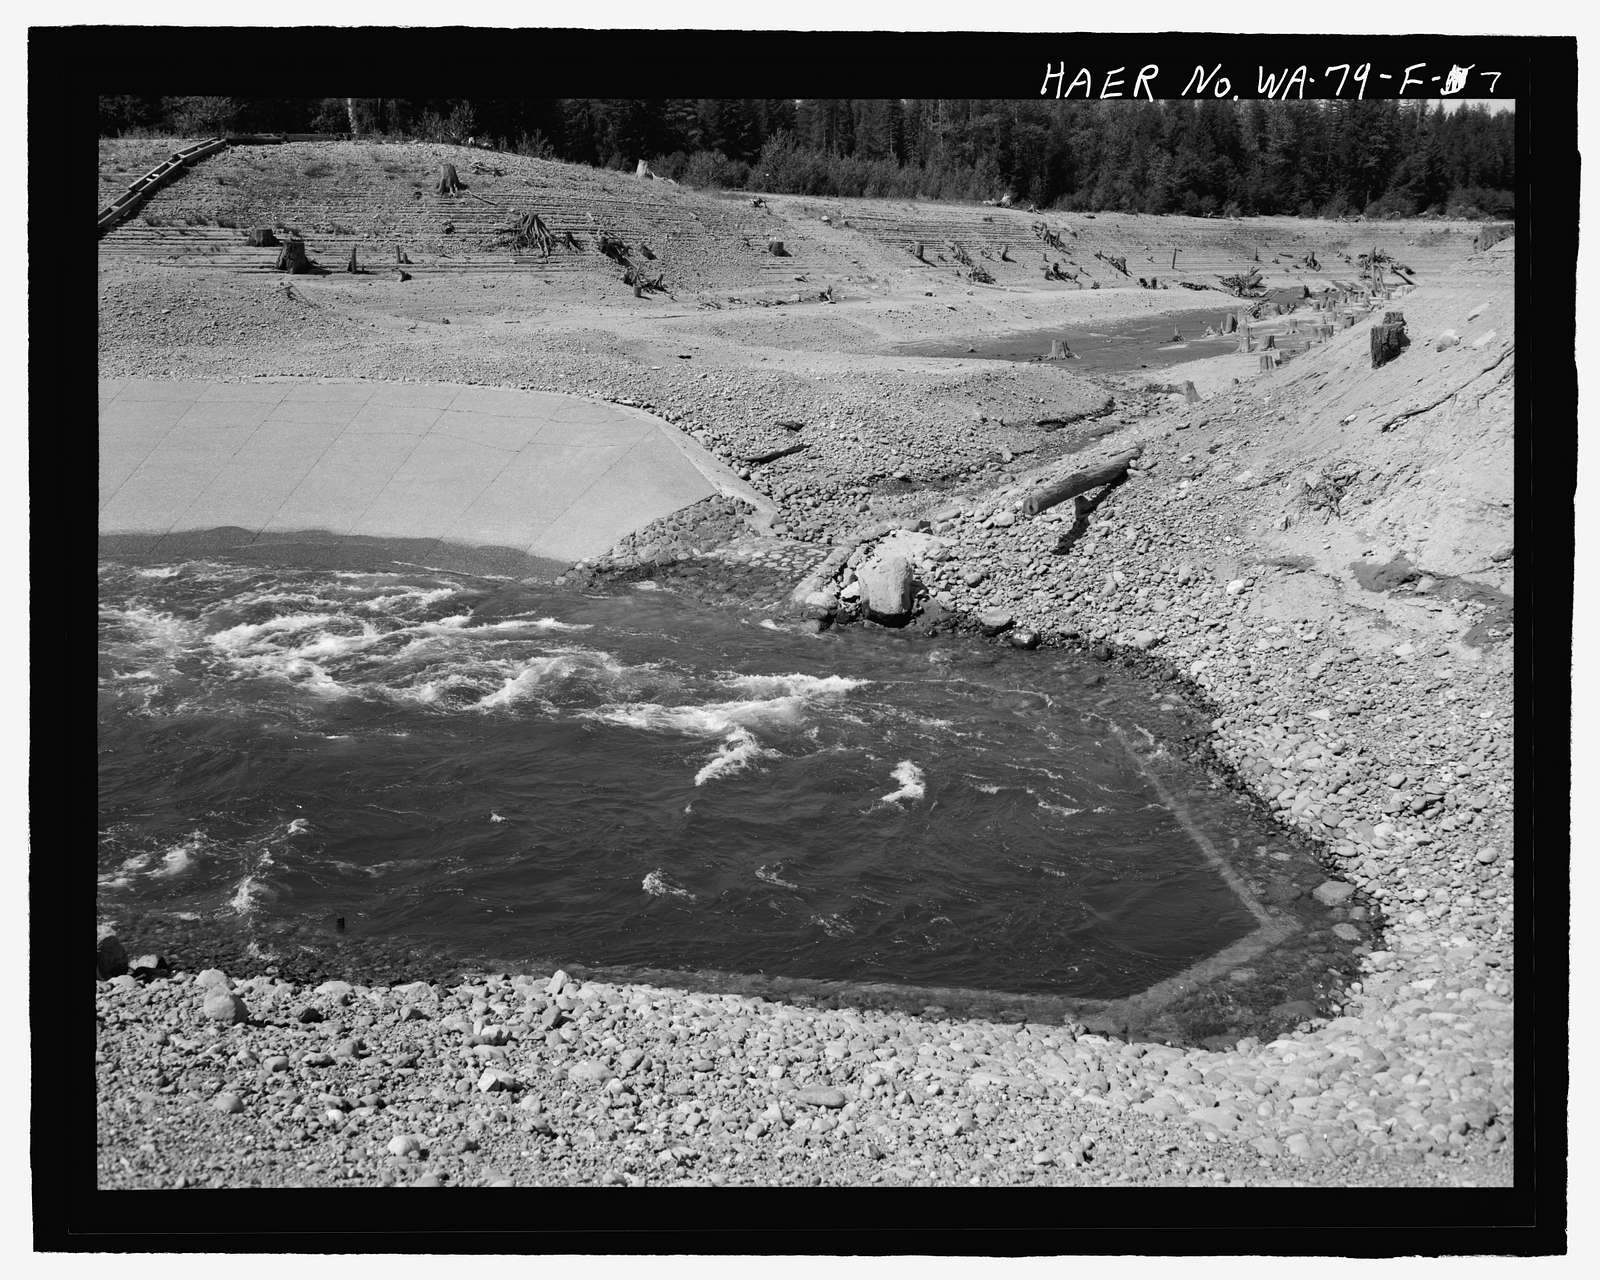 Kachess Dam, Inlet Channel, Kachess River, 1.5 miles north of Interstate 90, Easton, Kittitas County, WA